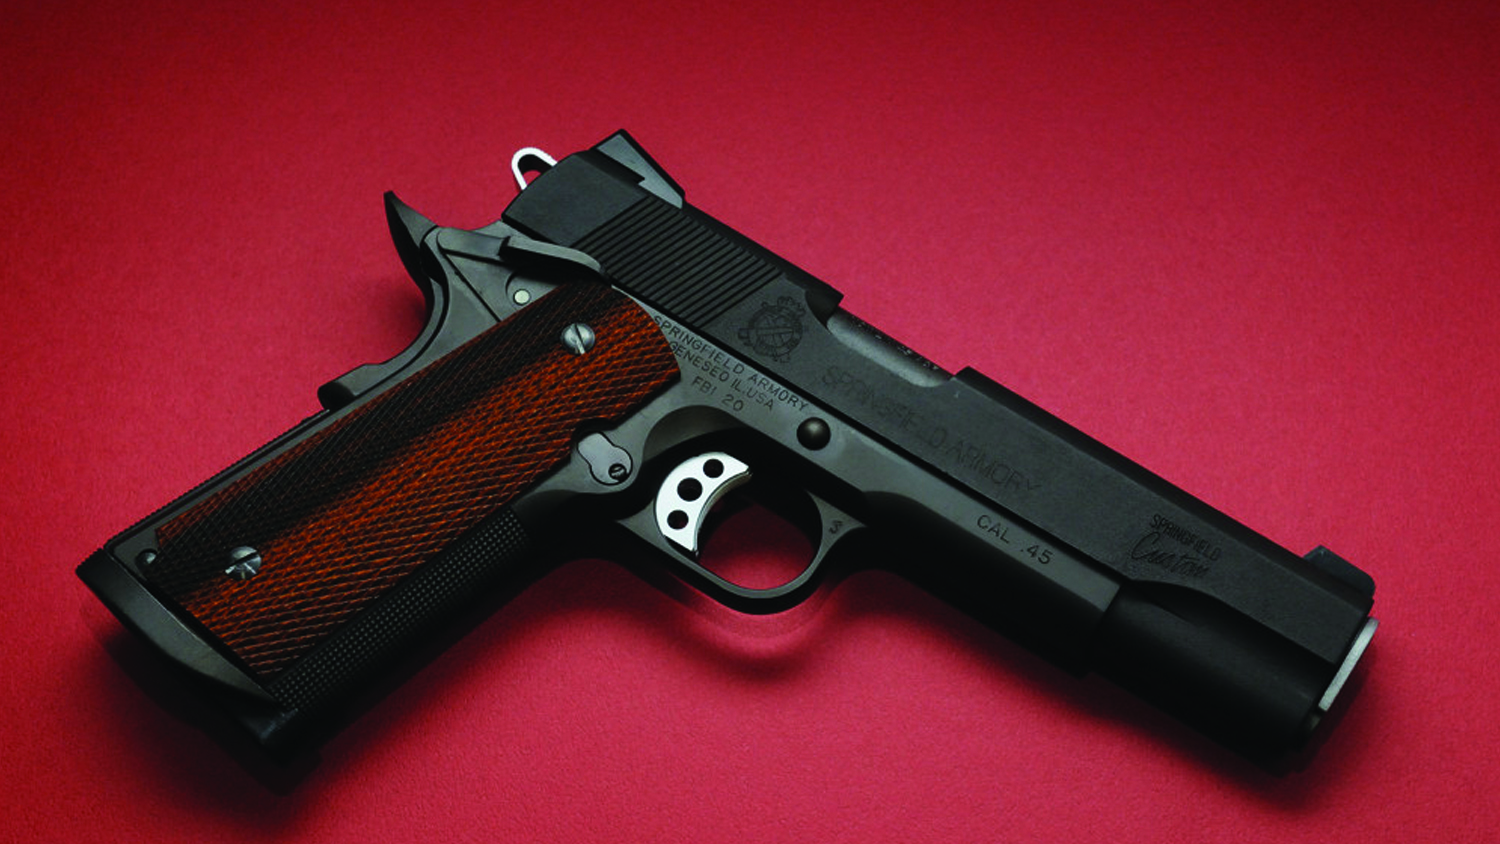 Buying and Selling a Firearm: Private Sales Explained